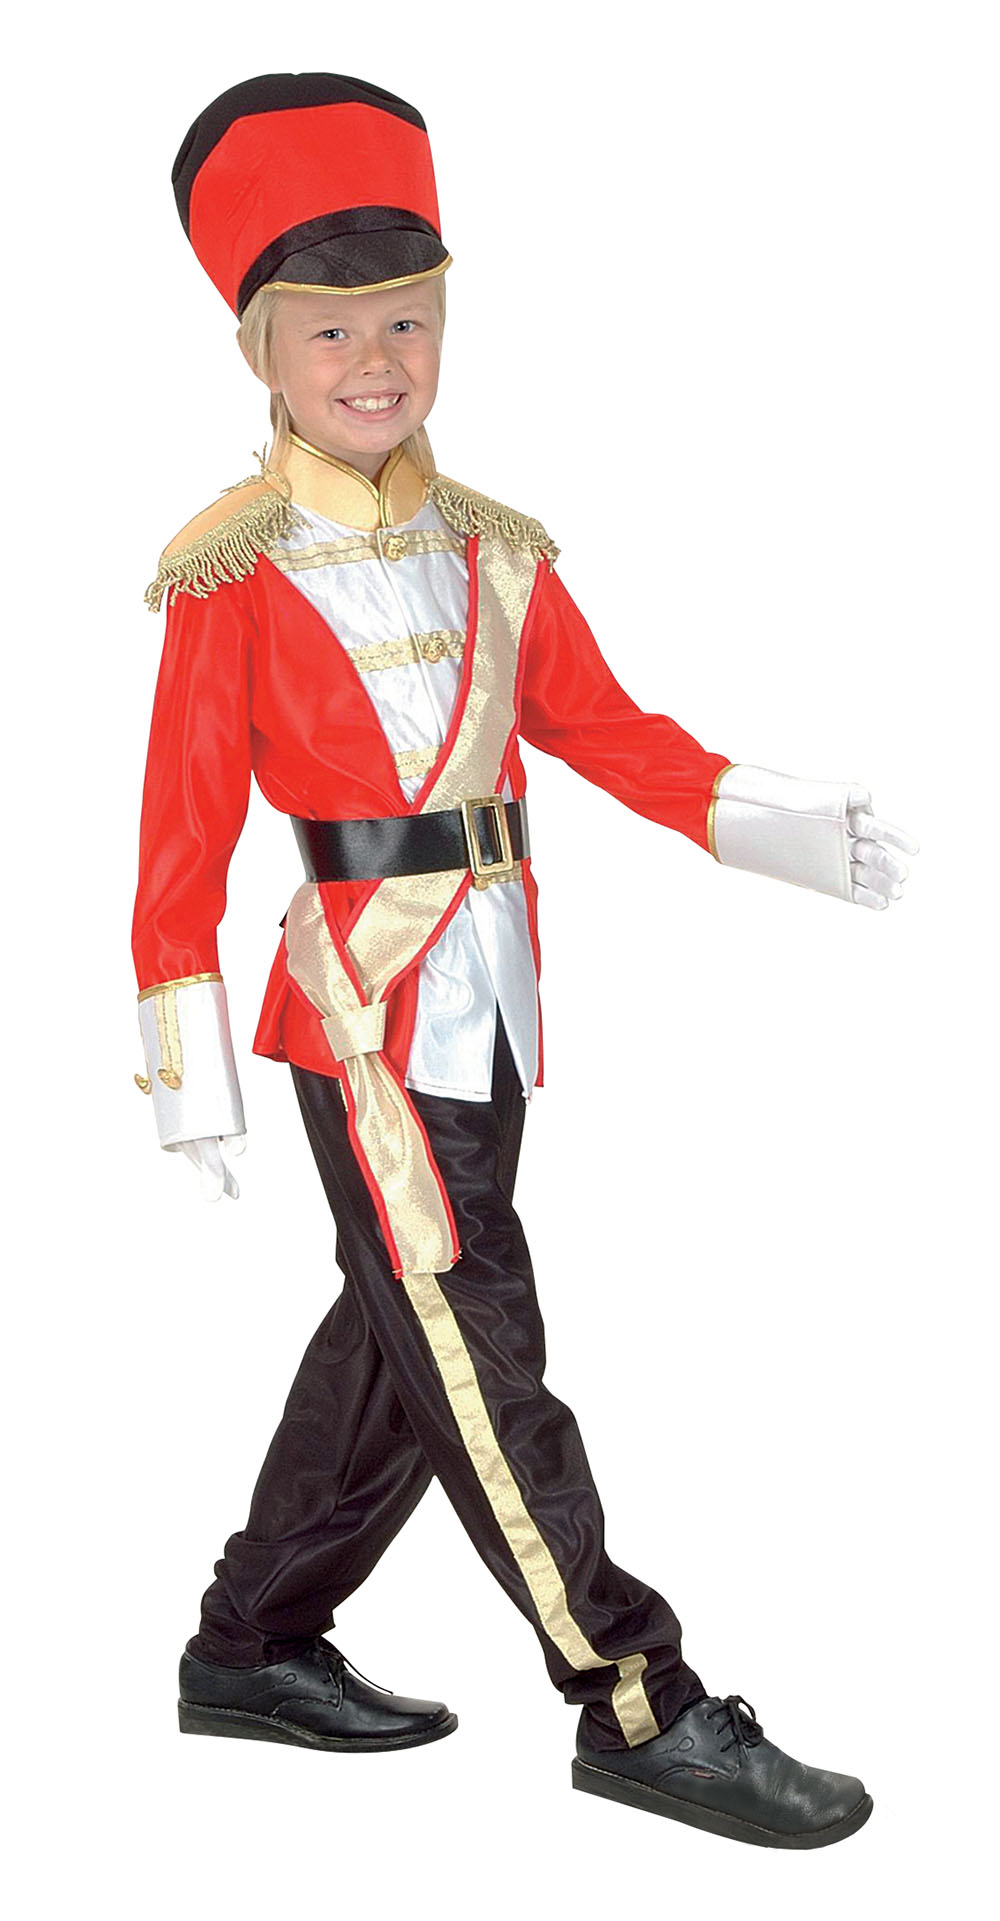 Best Toy And Model Soldiers For Kids : Childs toy soldier costume